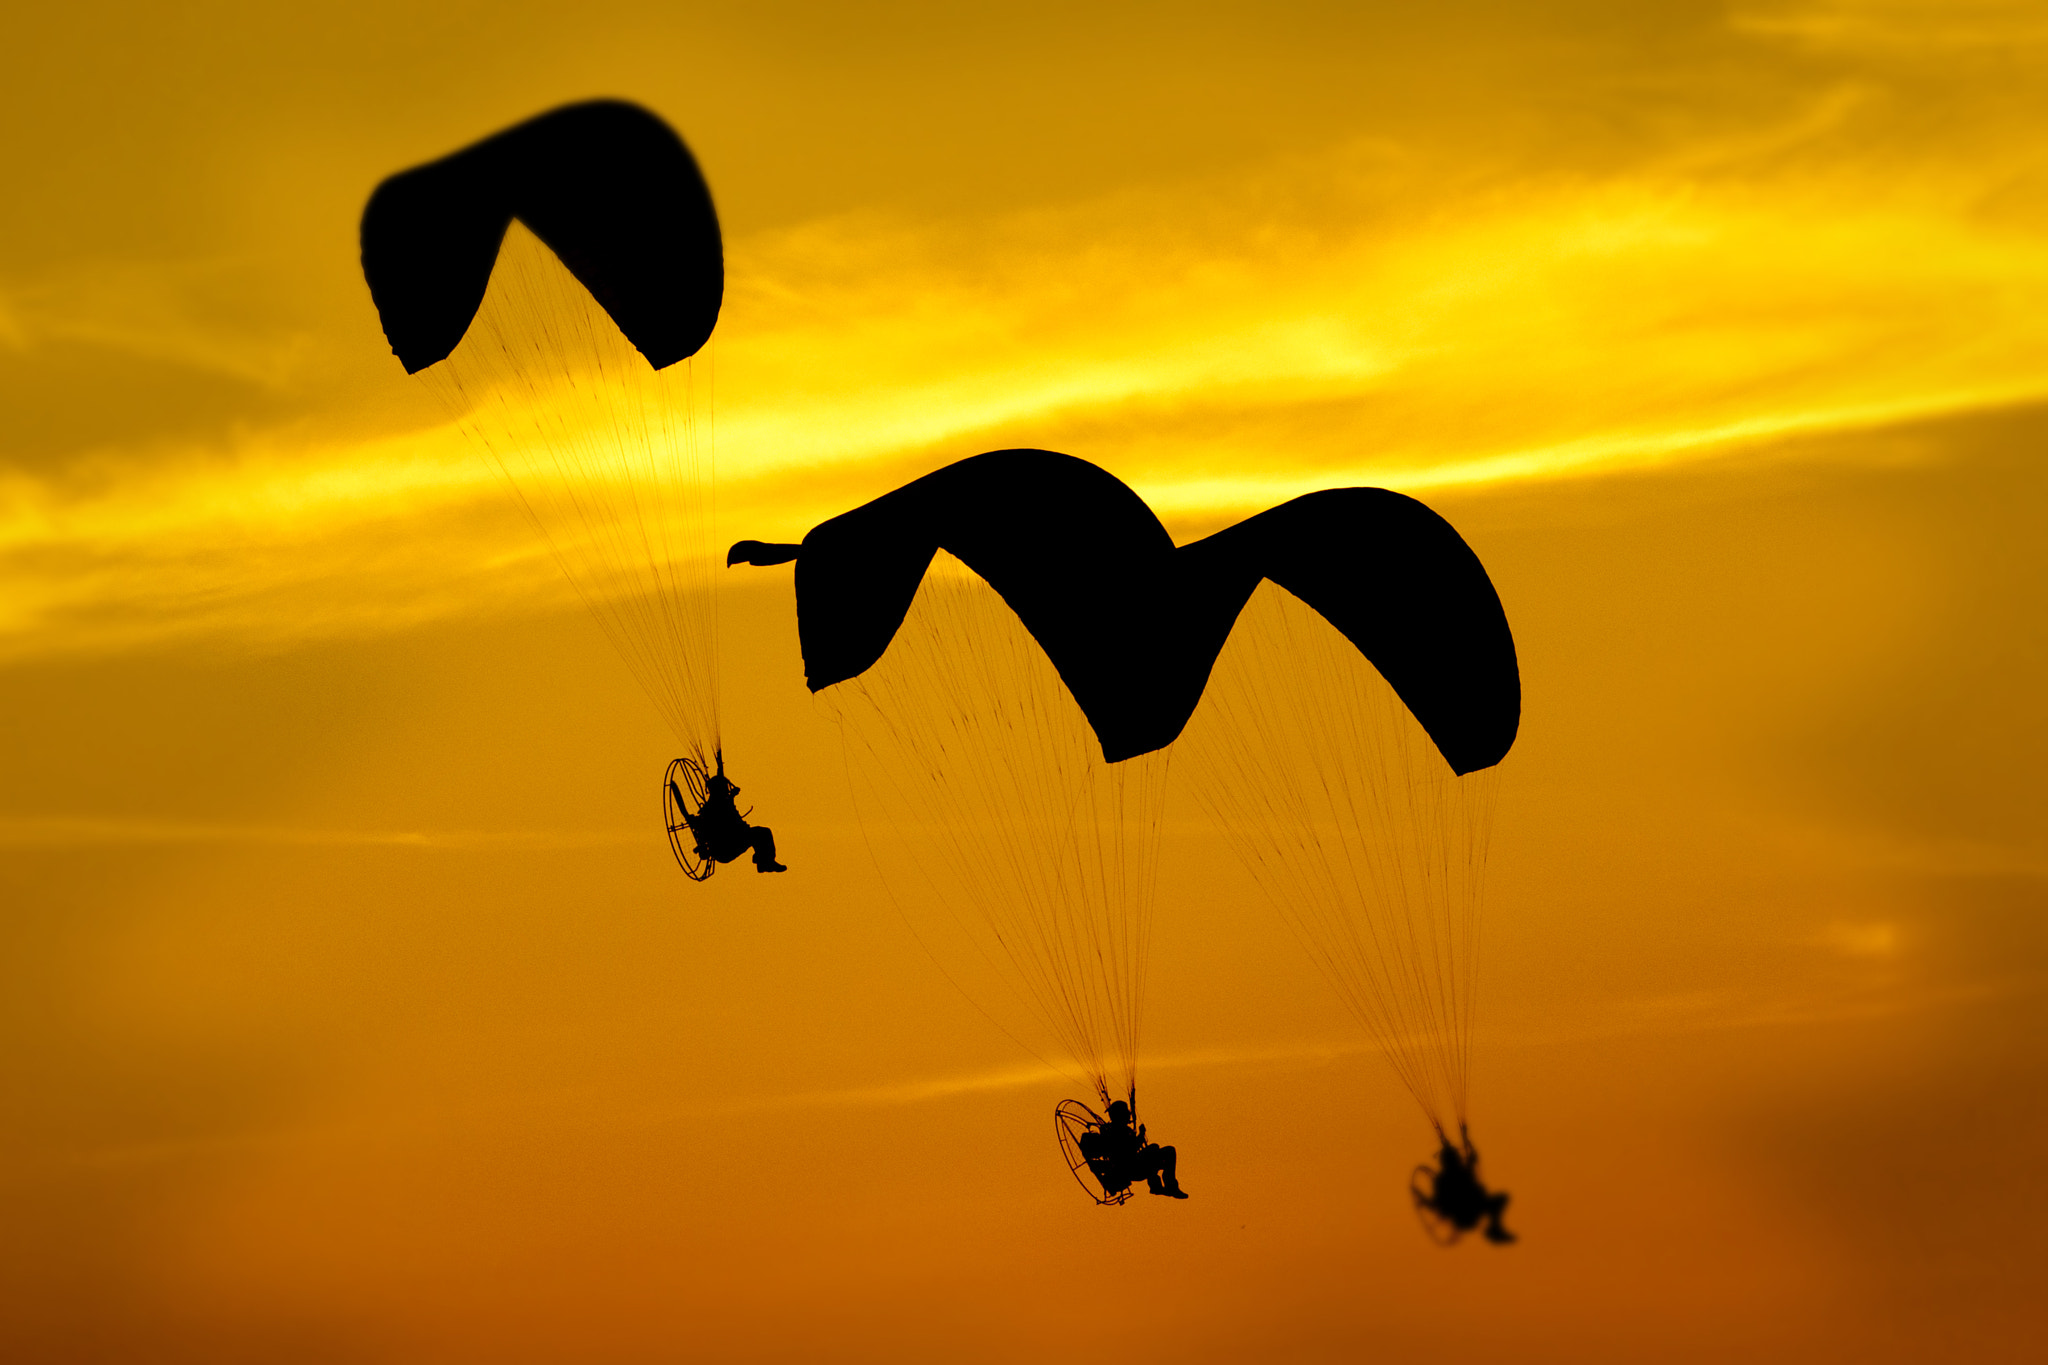 Photograph paraglider by CARLITO SO on 500px